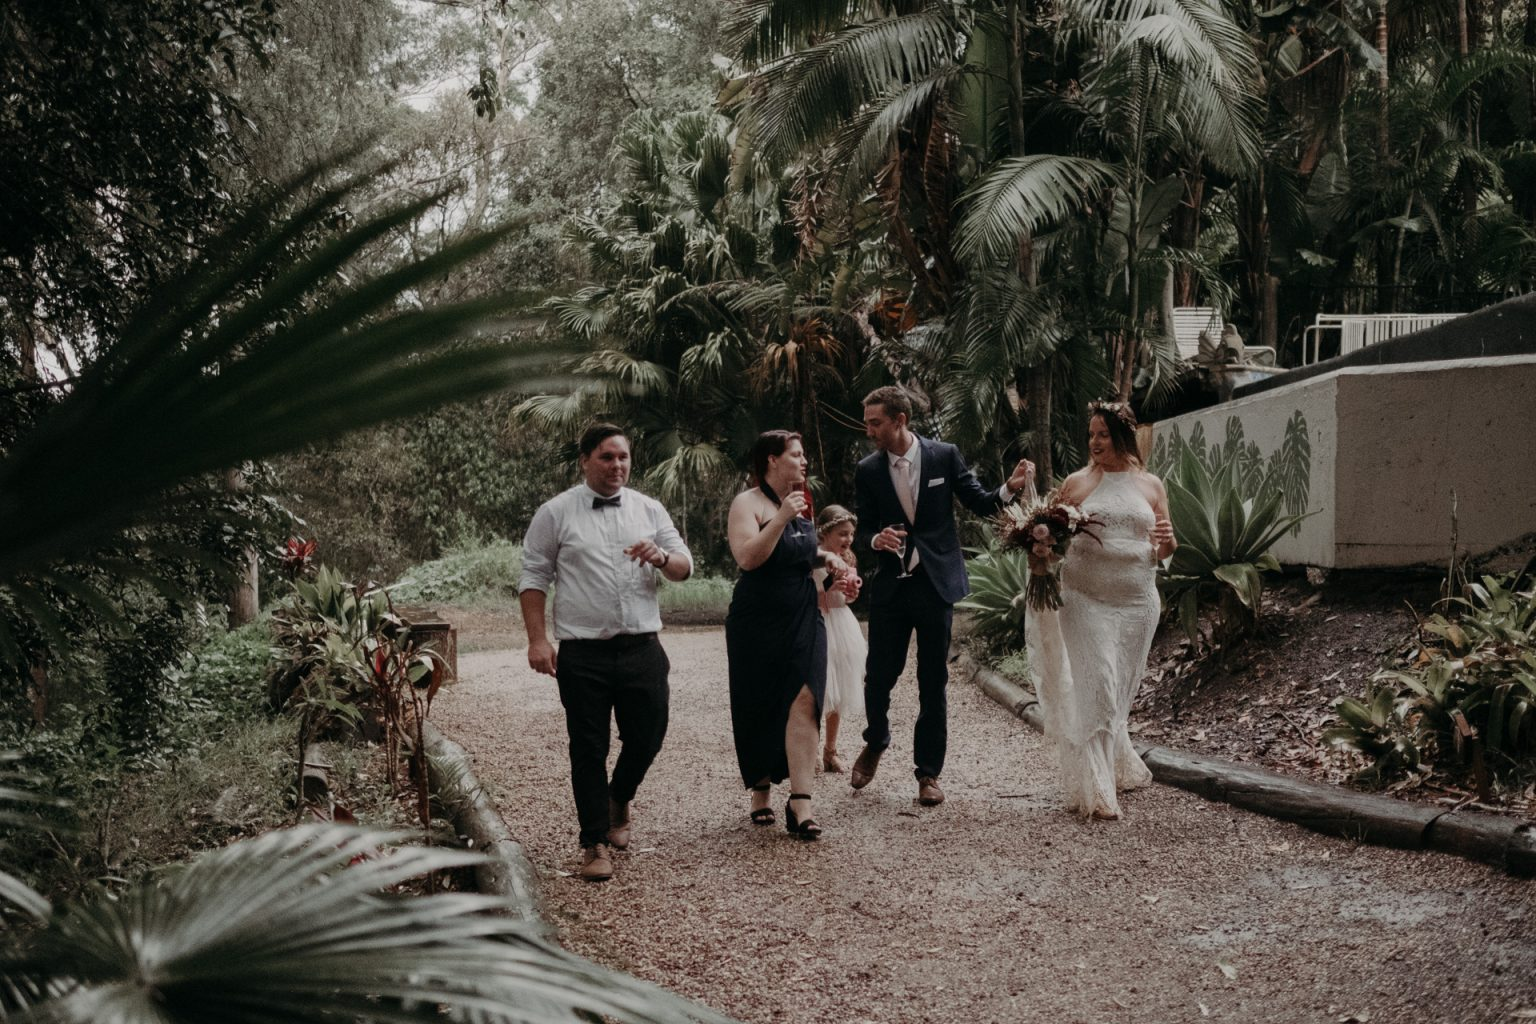 bridal party walking with champagne